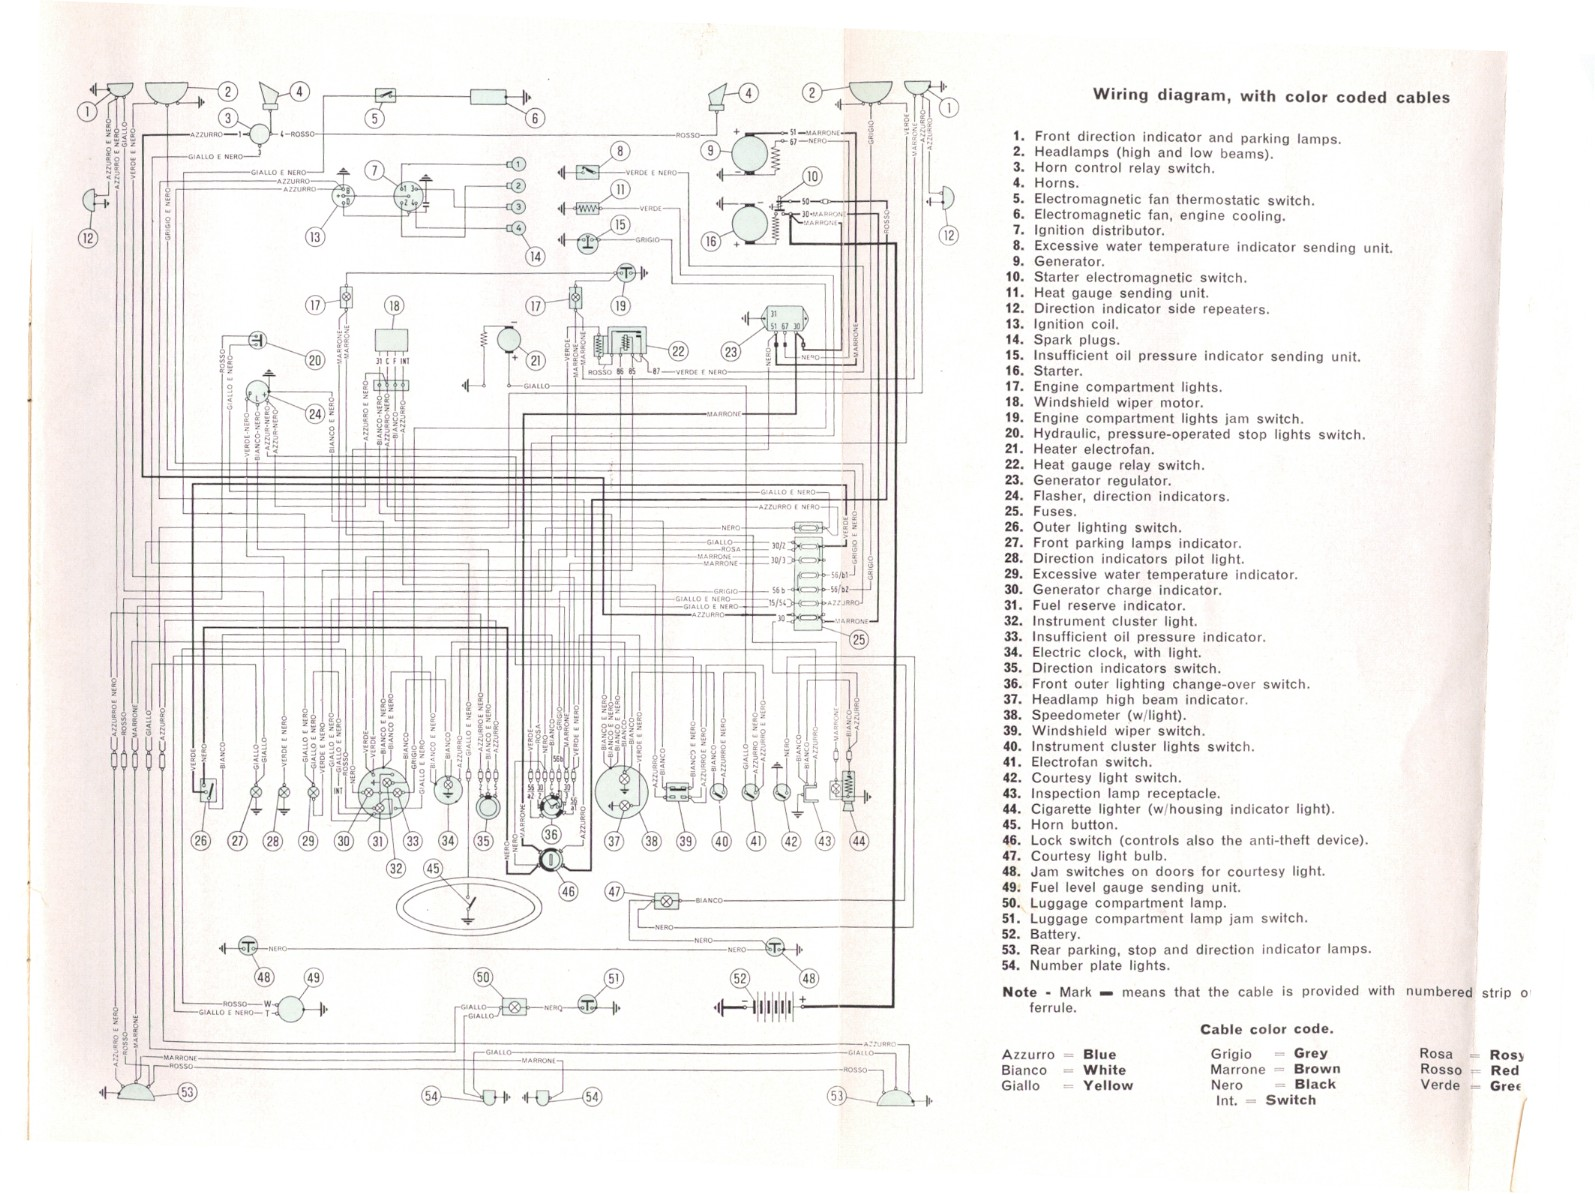 auto wiring diagram fiat 1500 wiring diagram fiat 1500 wiring diagram